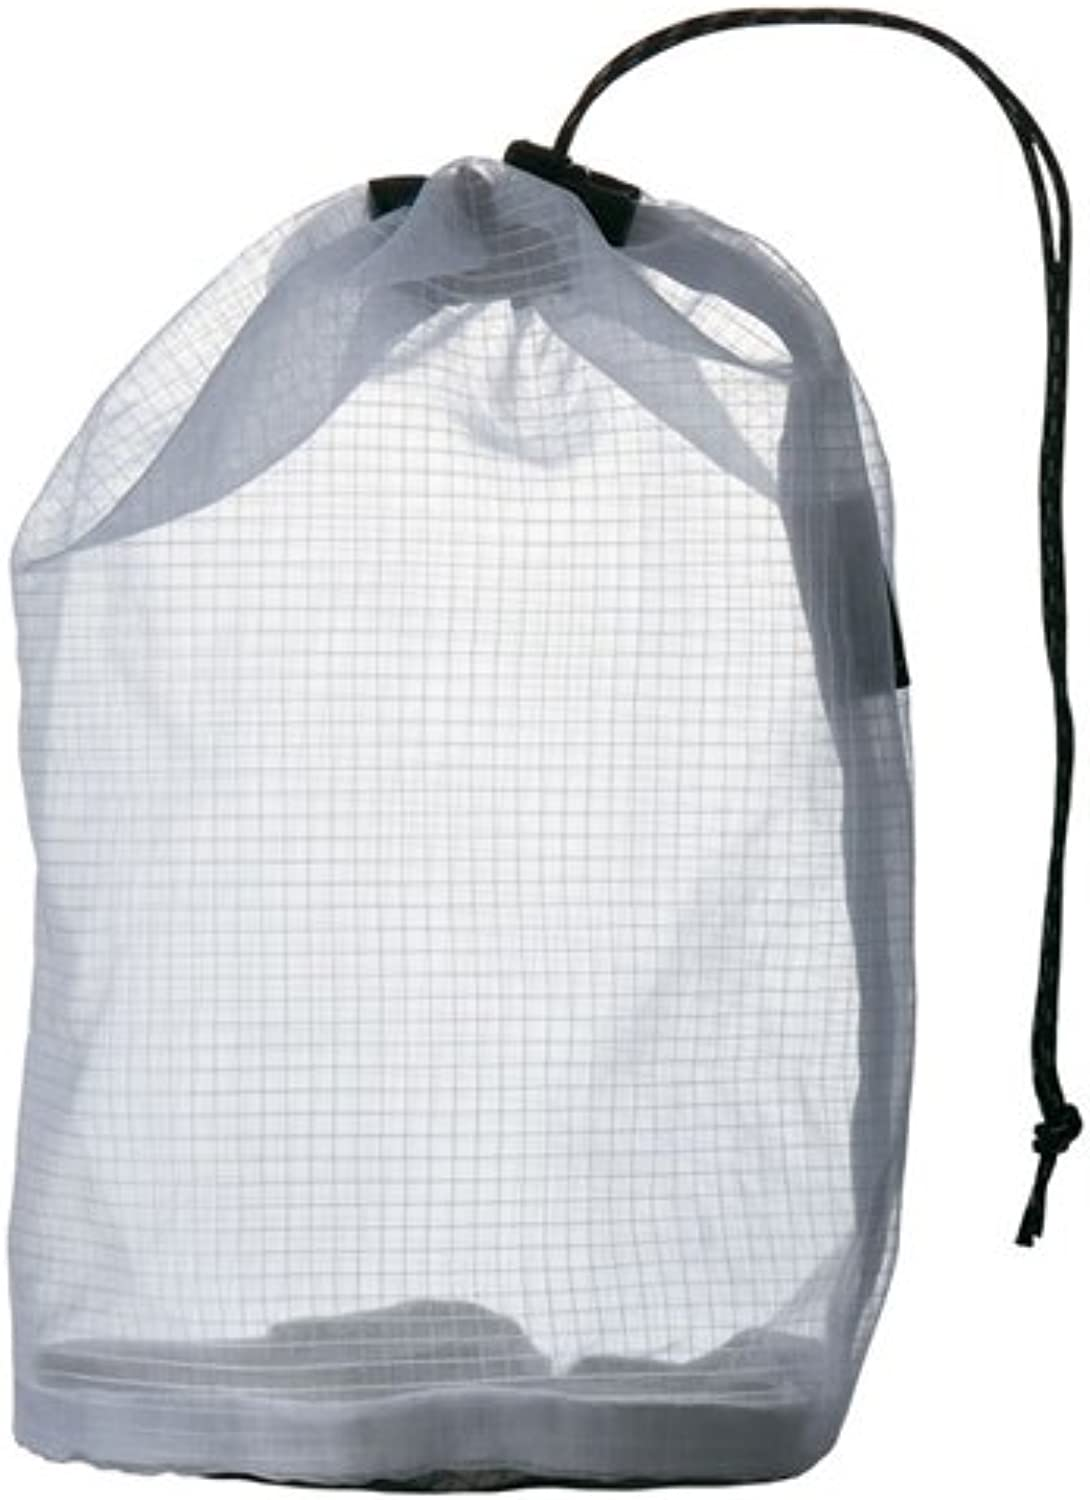 3b207177a301 Snow peak Super Mesh S UG-504 S Suck Stuff nnjuct4142-Sporting goods ...